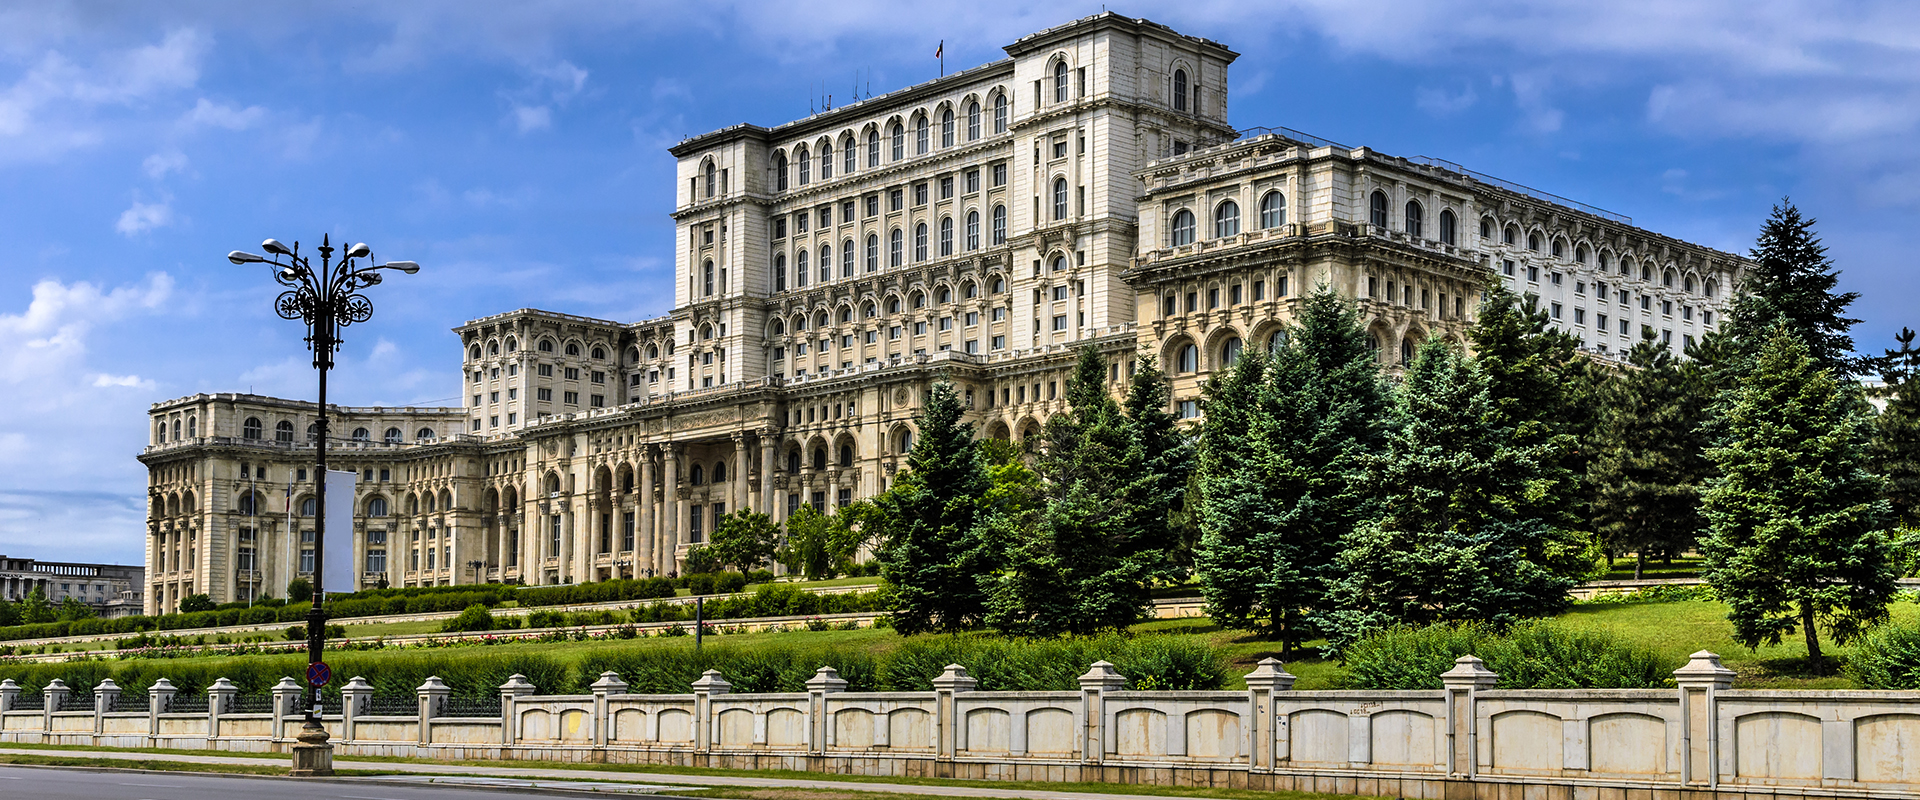 Bucharest_Parlamento